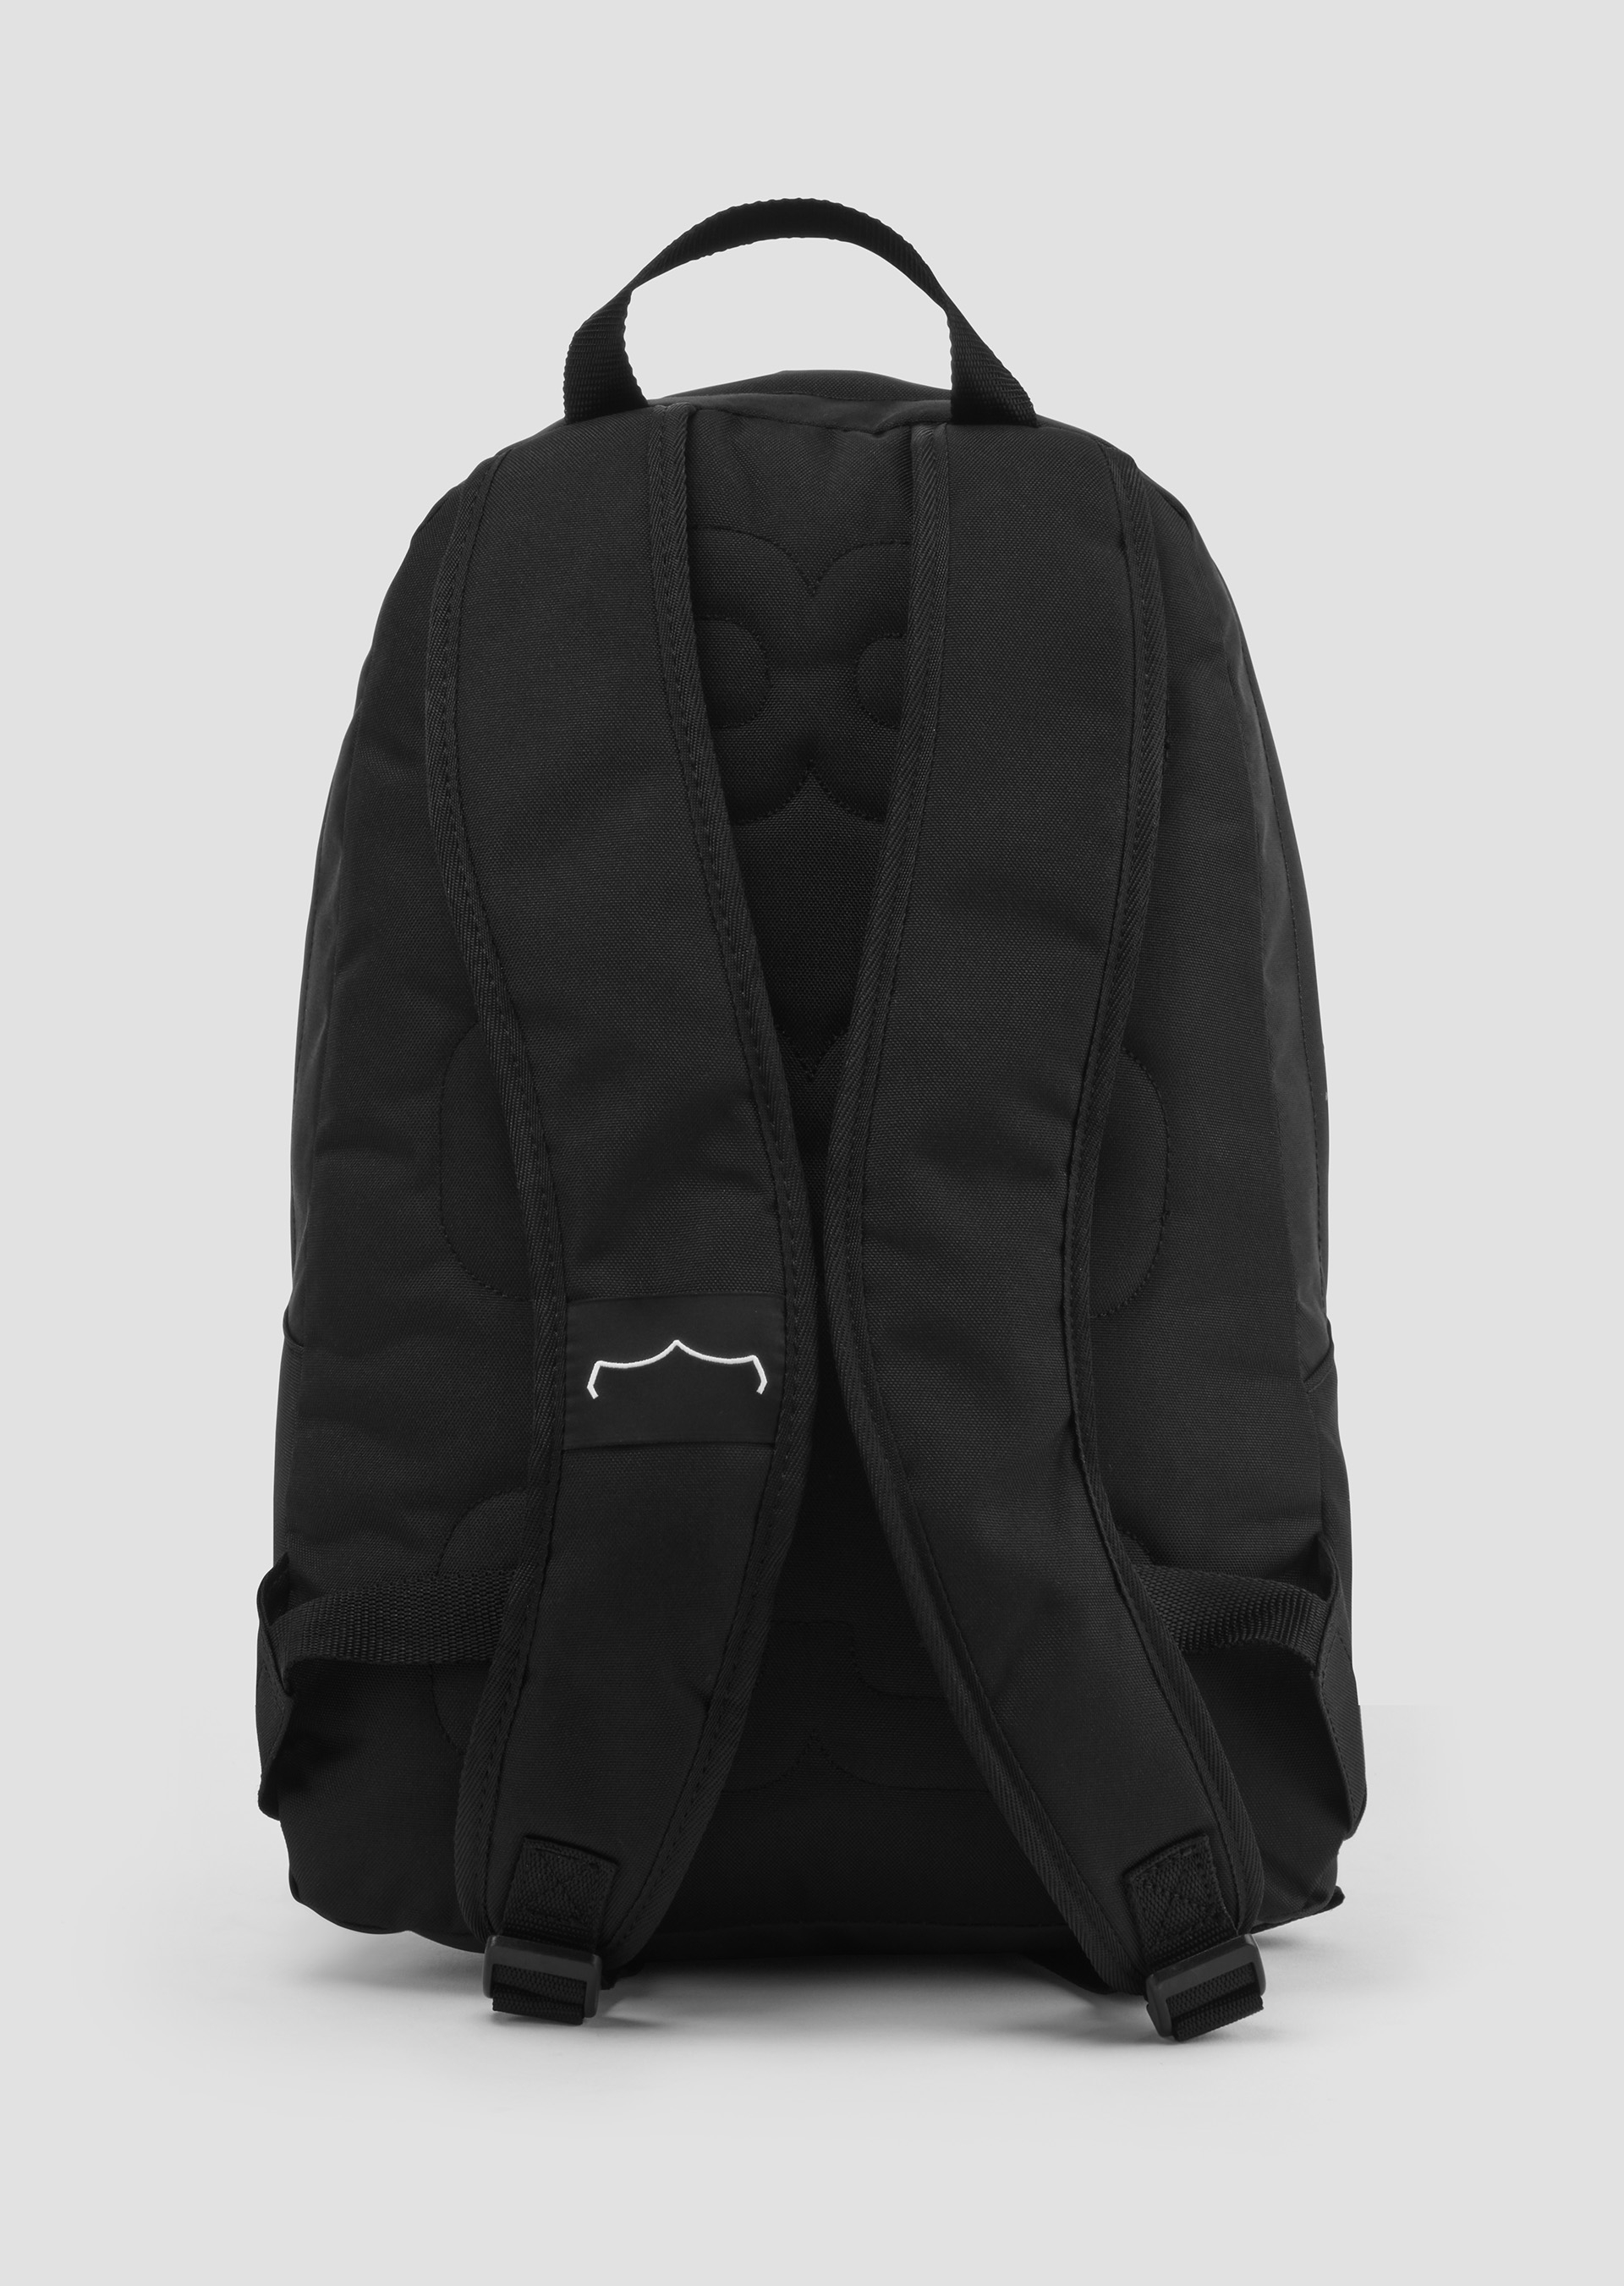 Poly twill backpack with logo on front second_image